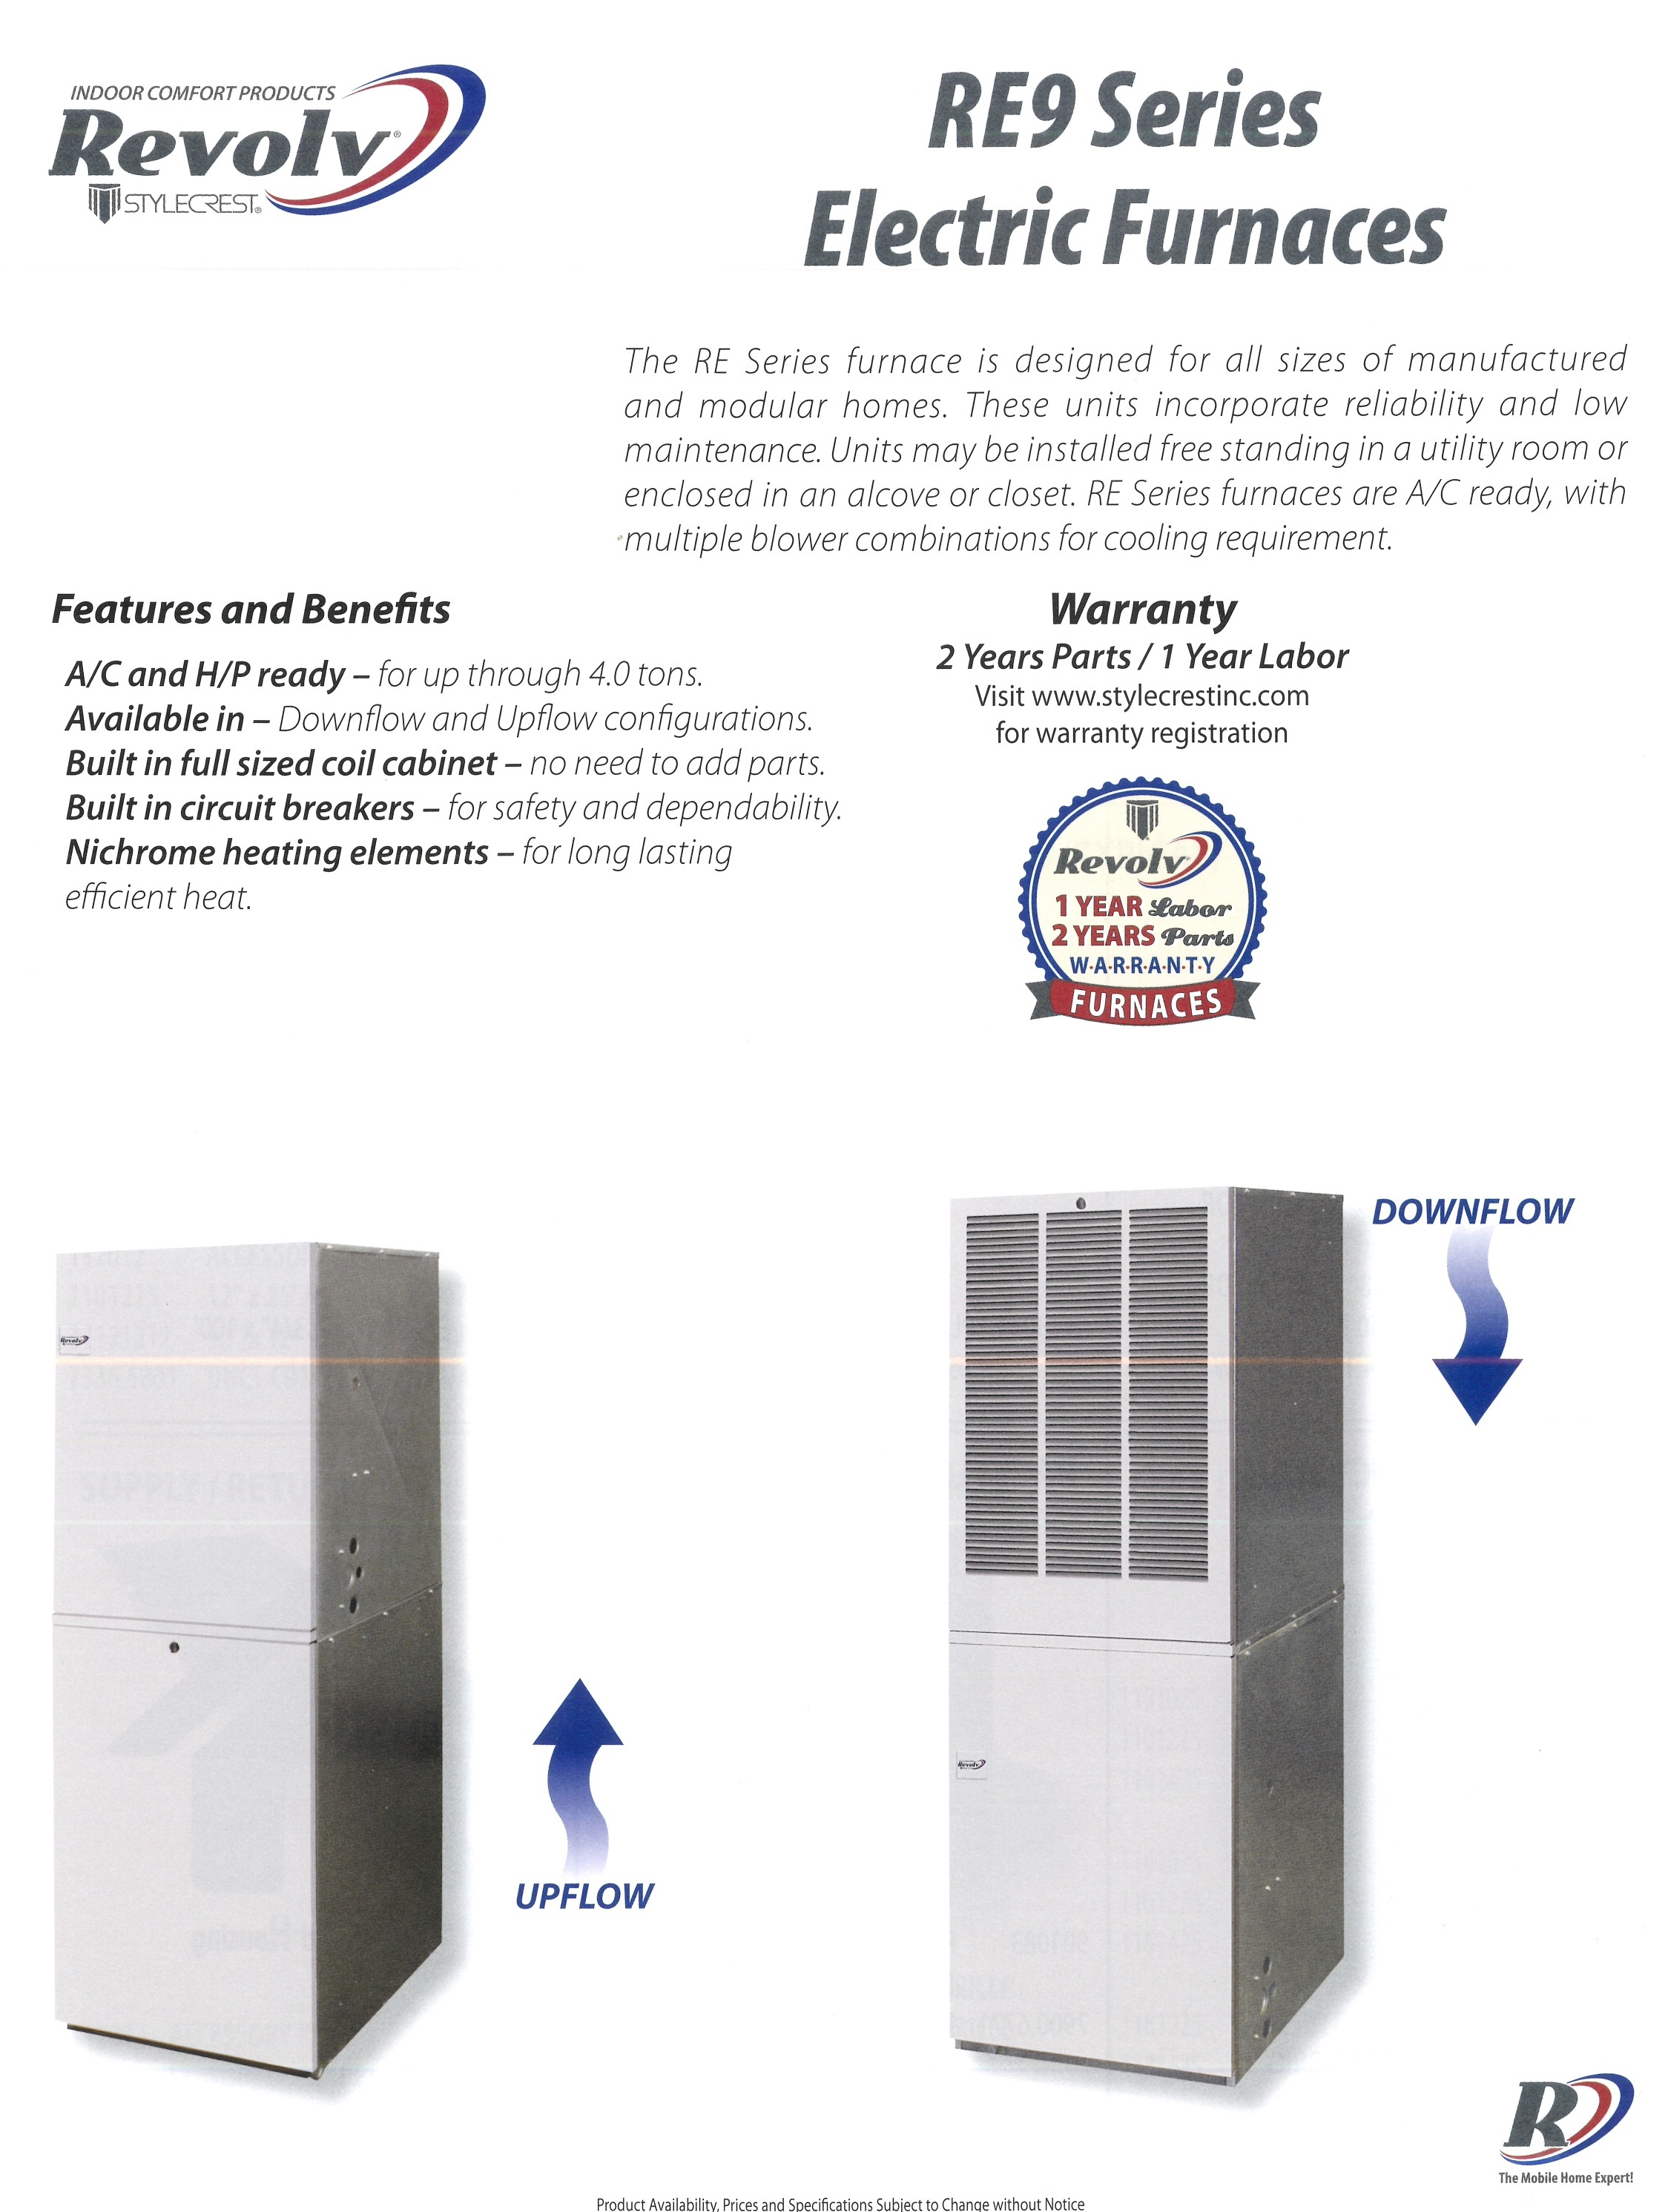 RE9 SERIES ELECTRIC FURNACES